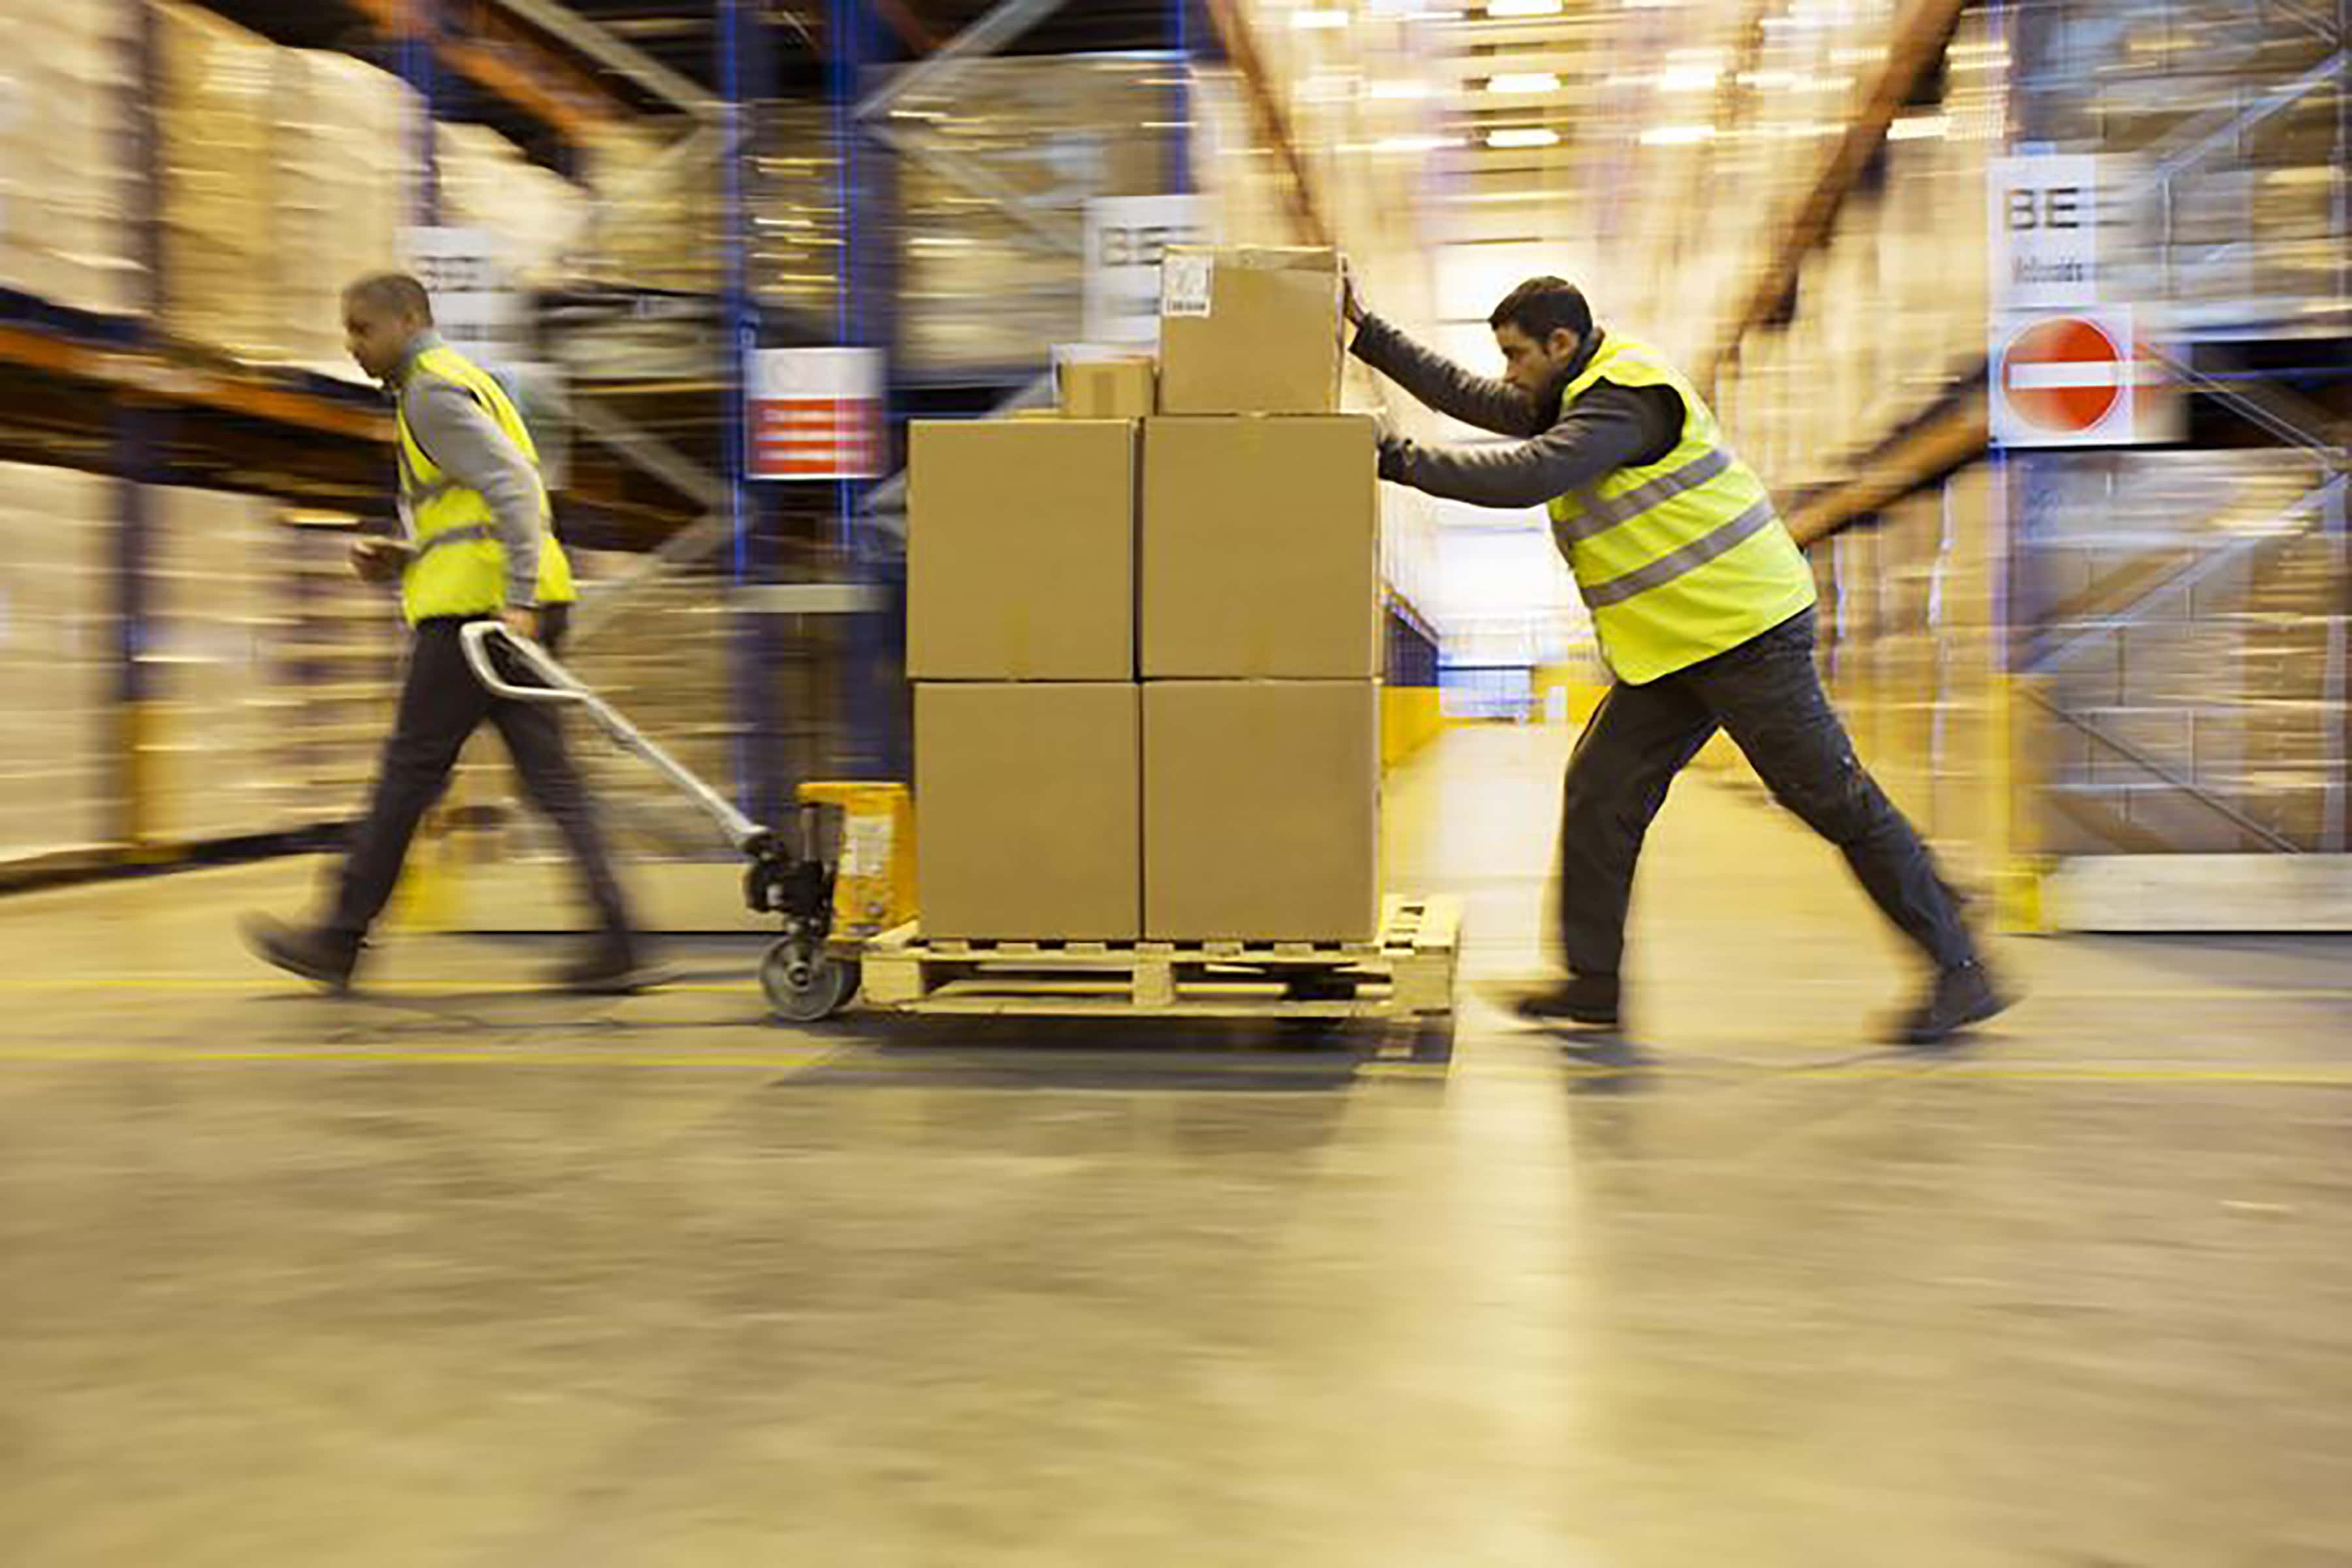 Today's Challenges Facing Wholesale Distributors